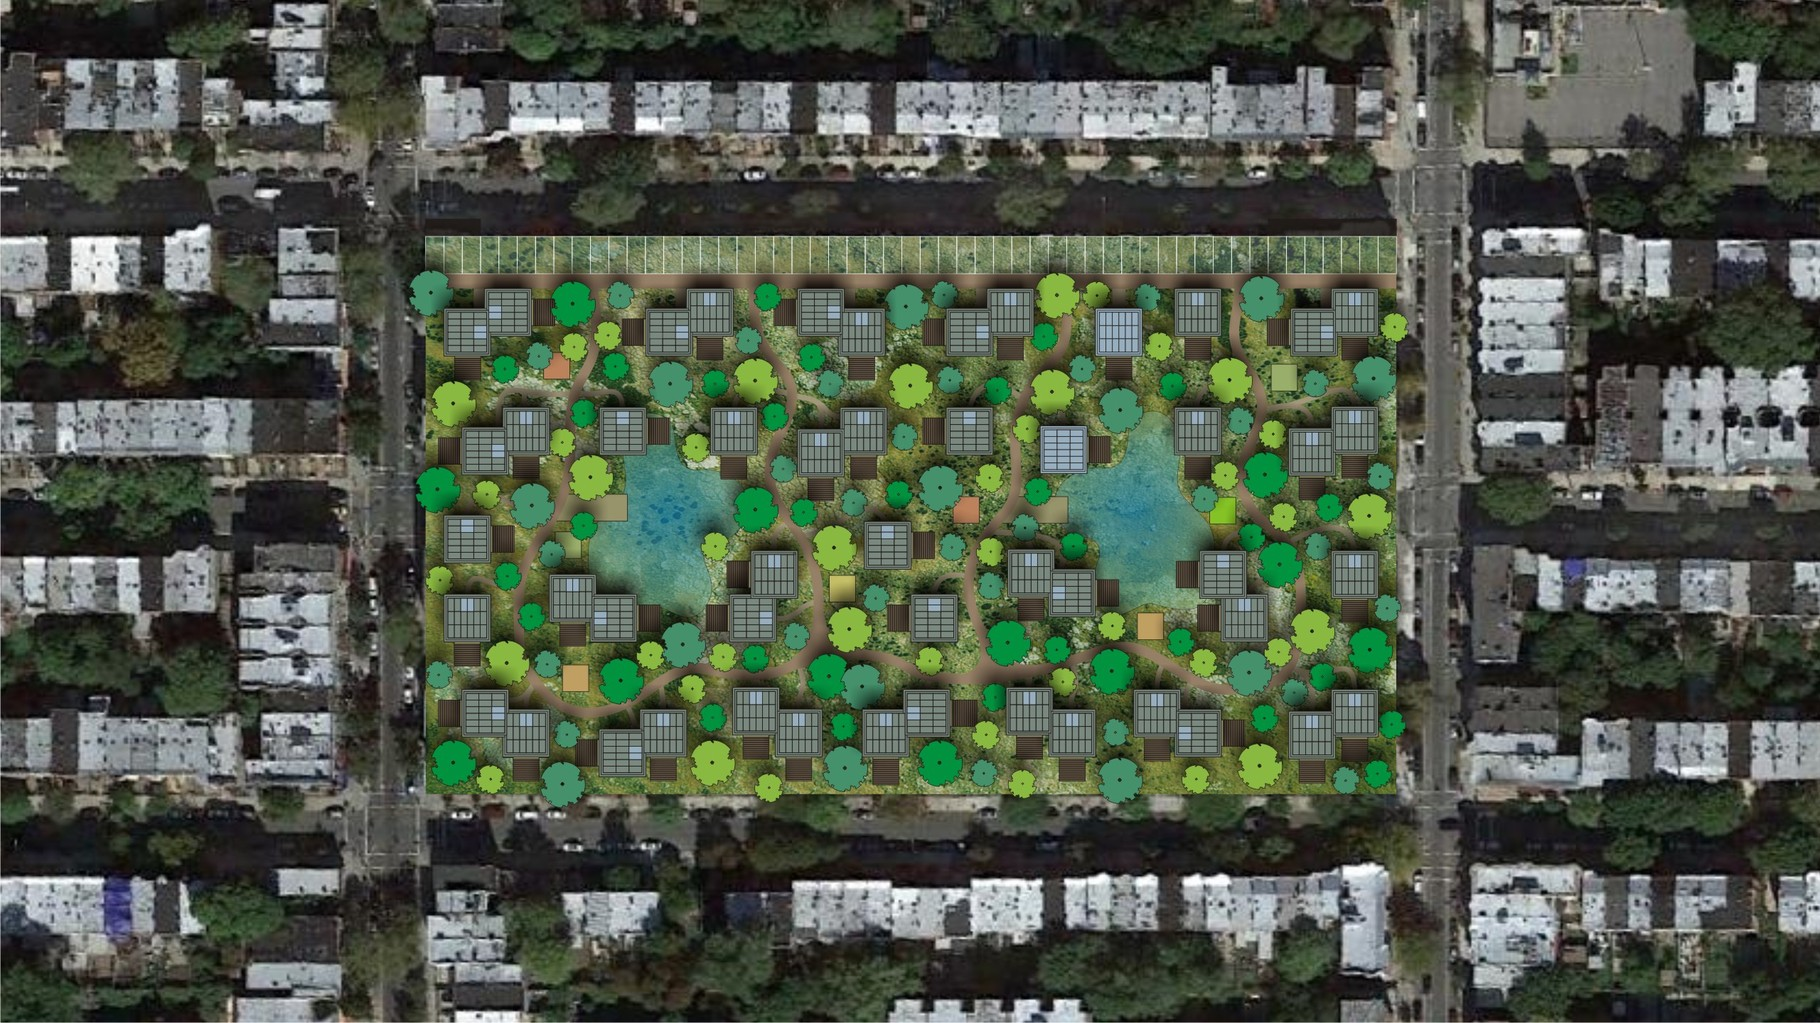 Visualisation OAS1S™: A desirable green community as an urban oasis in the concrete jungle.